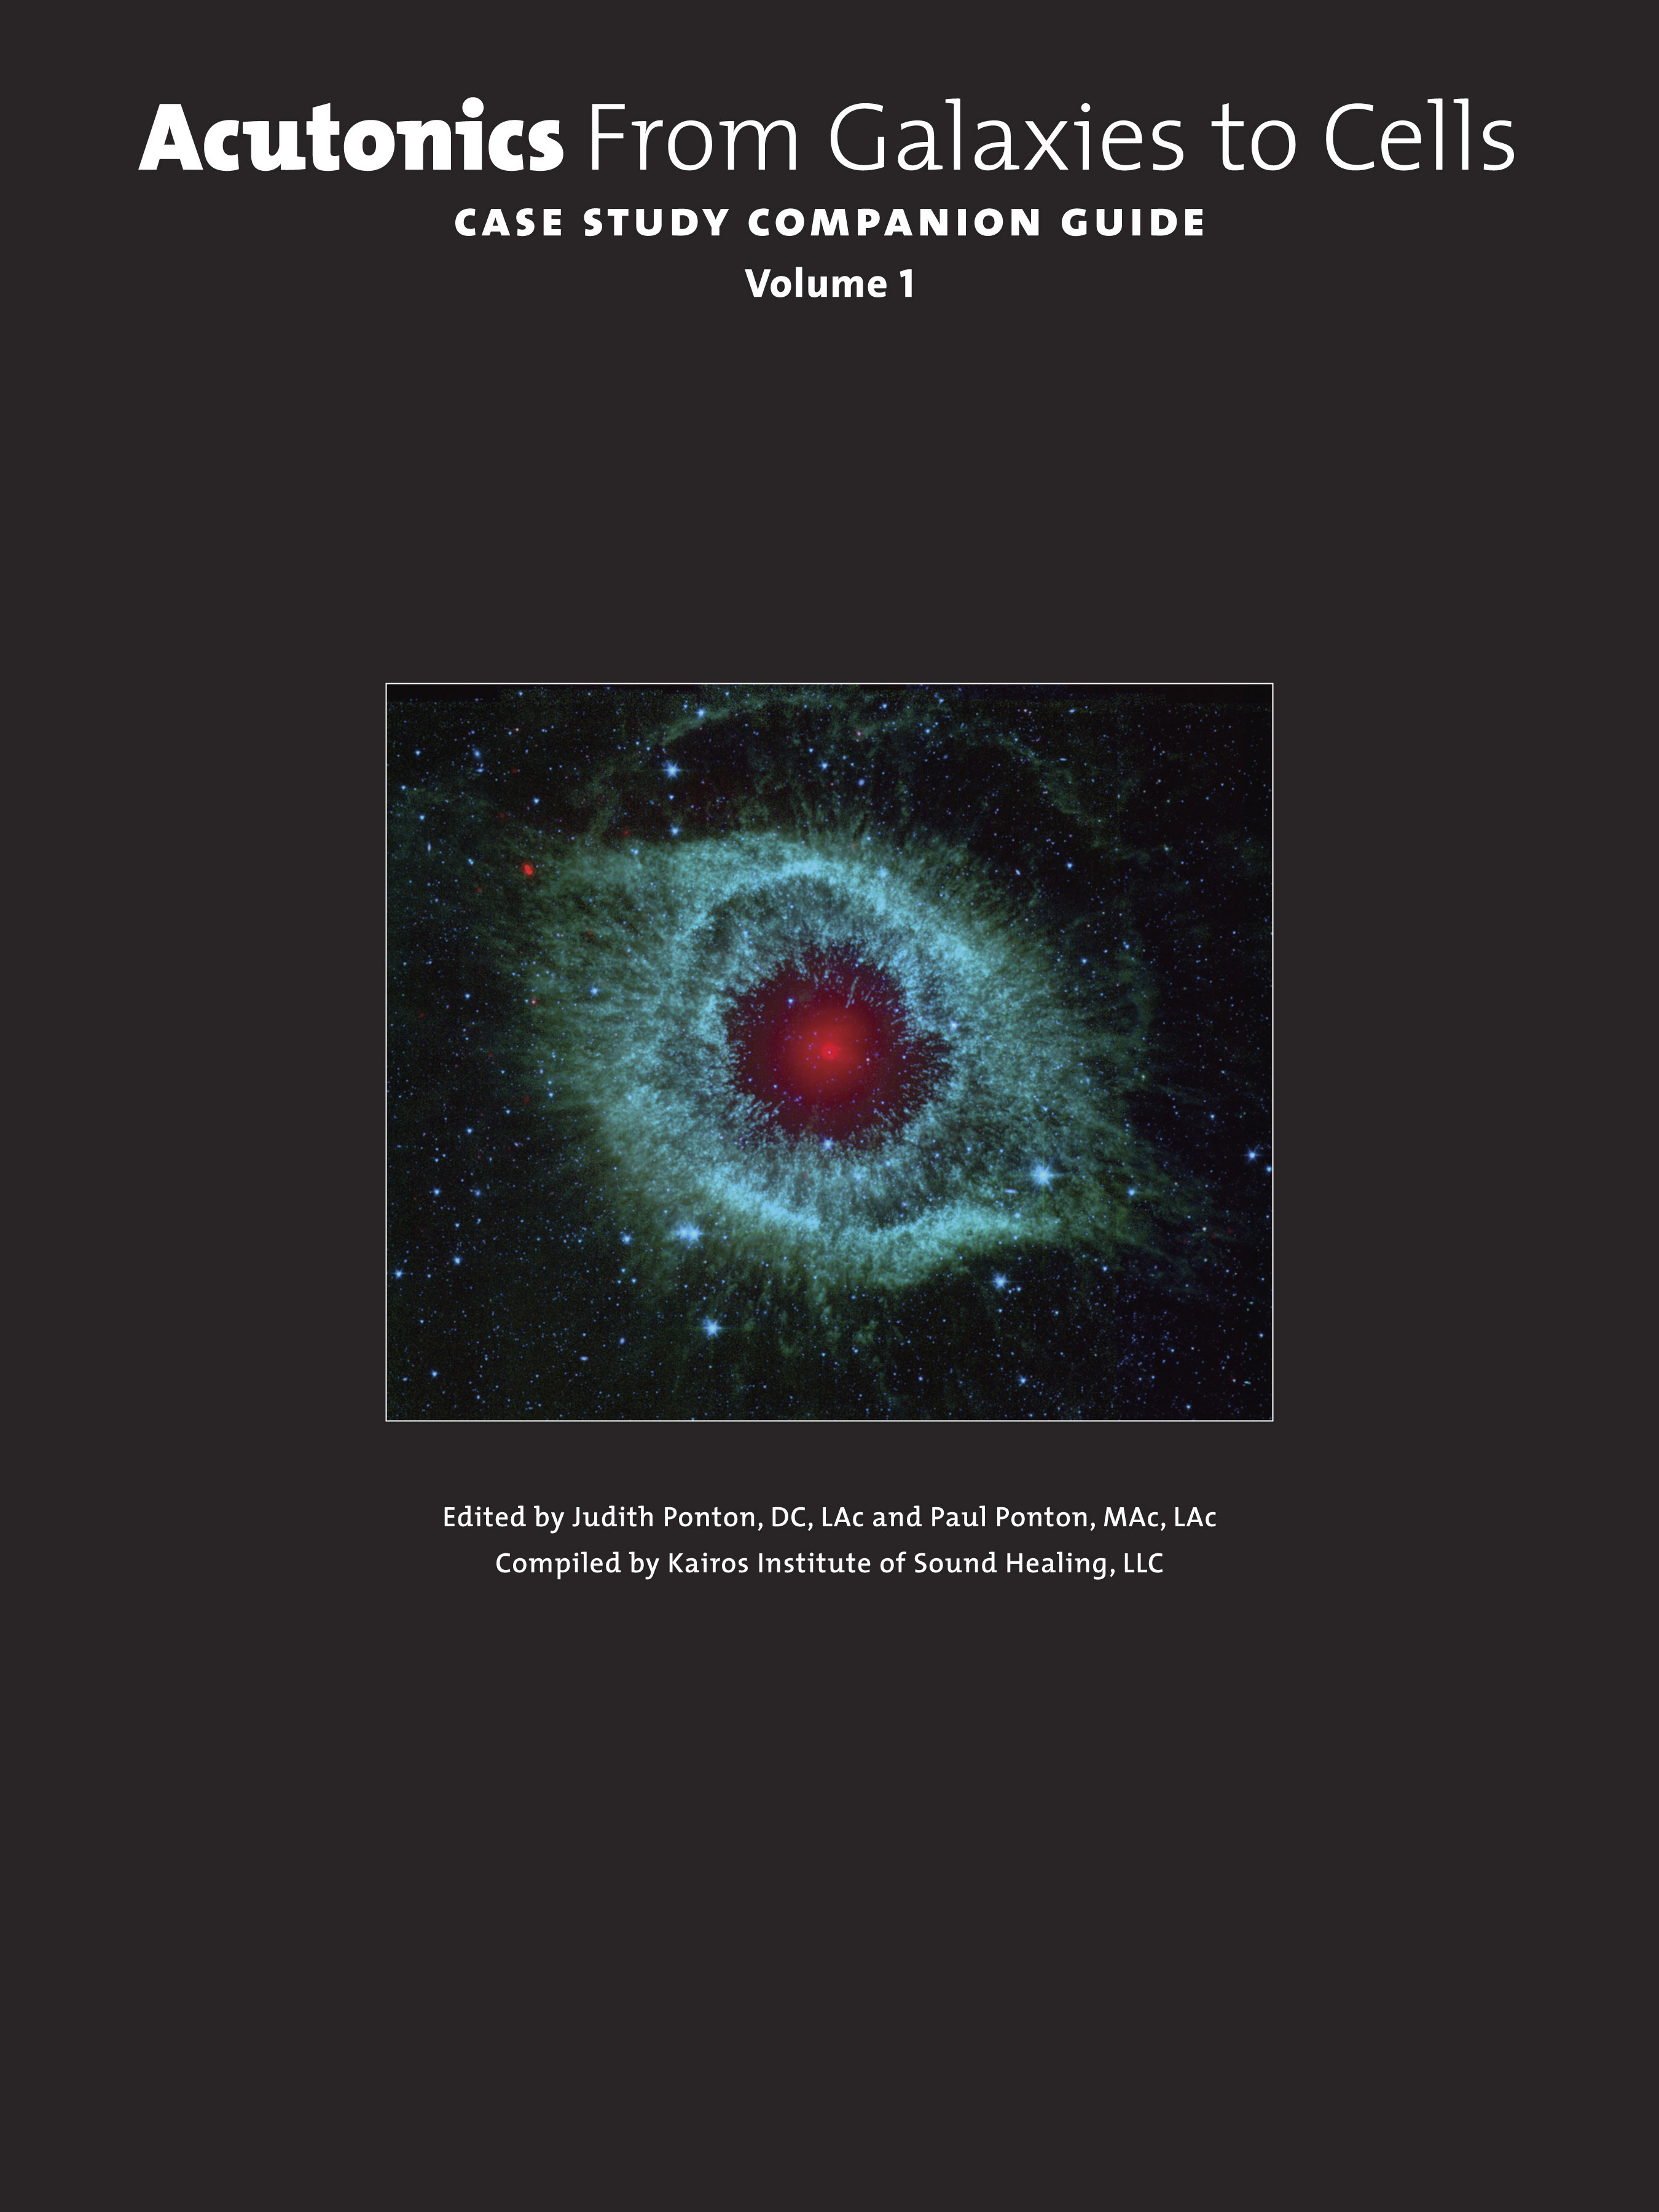 Acutonics from Galaxies To Cells ~ Companion Guide